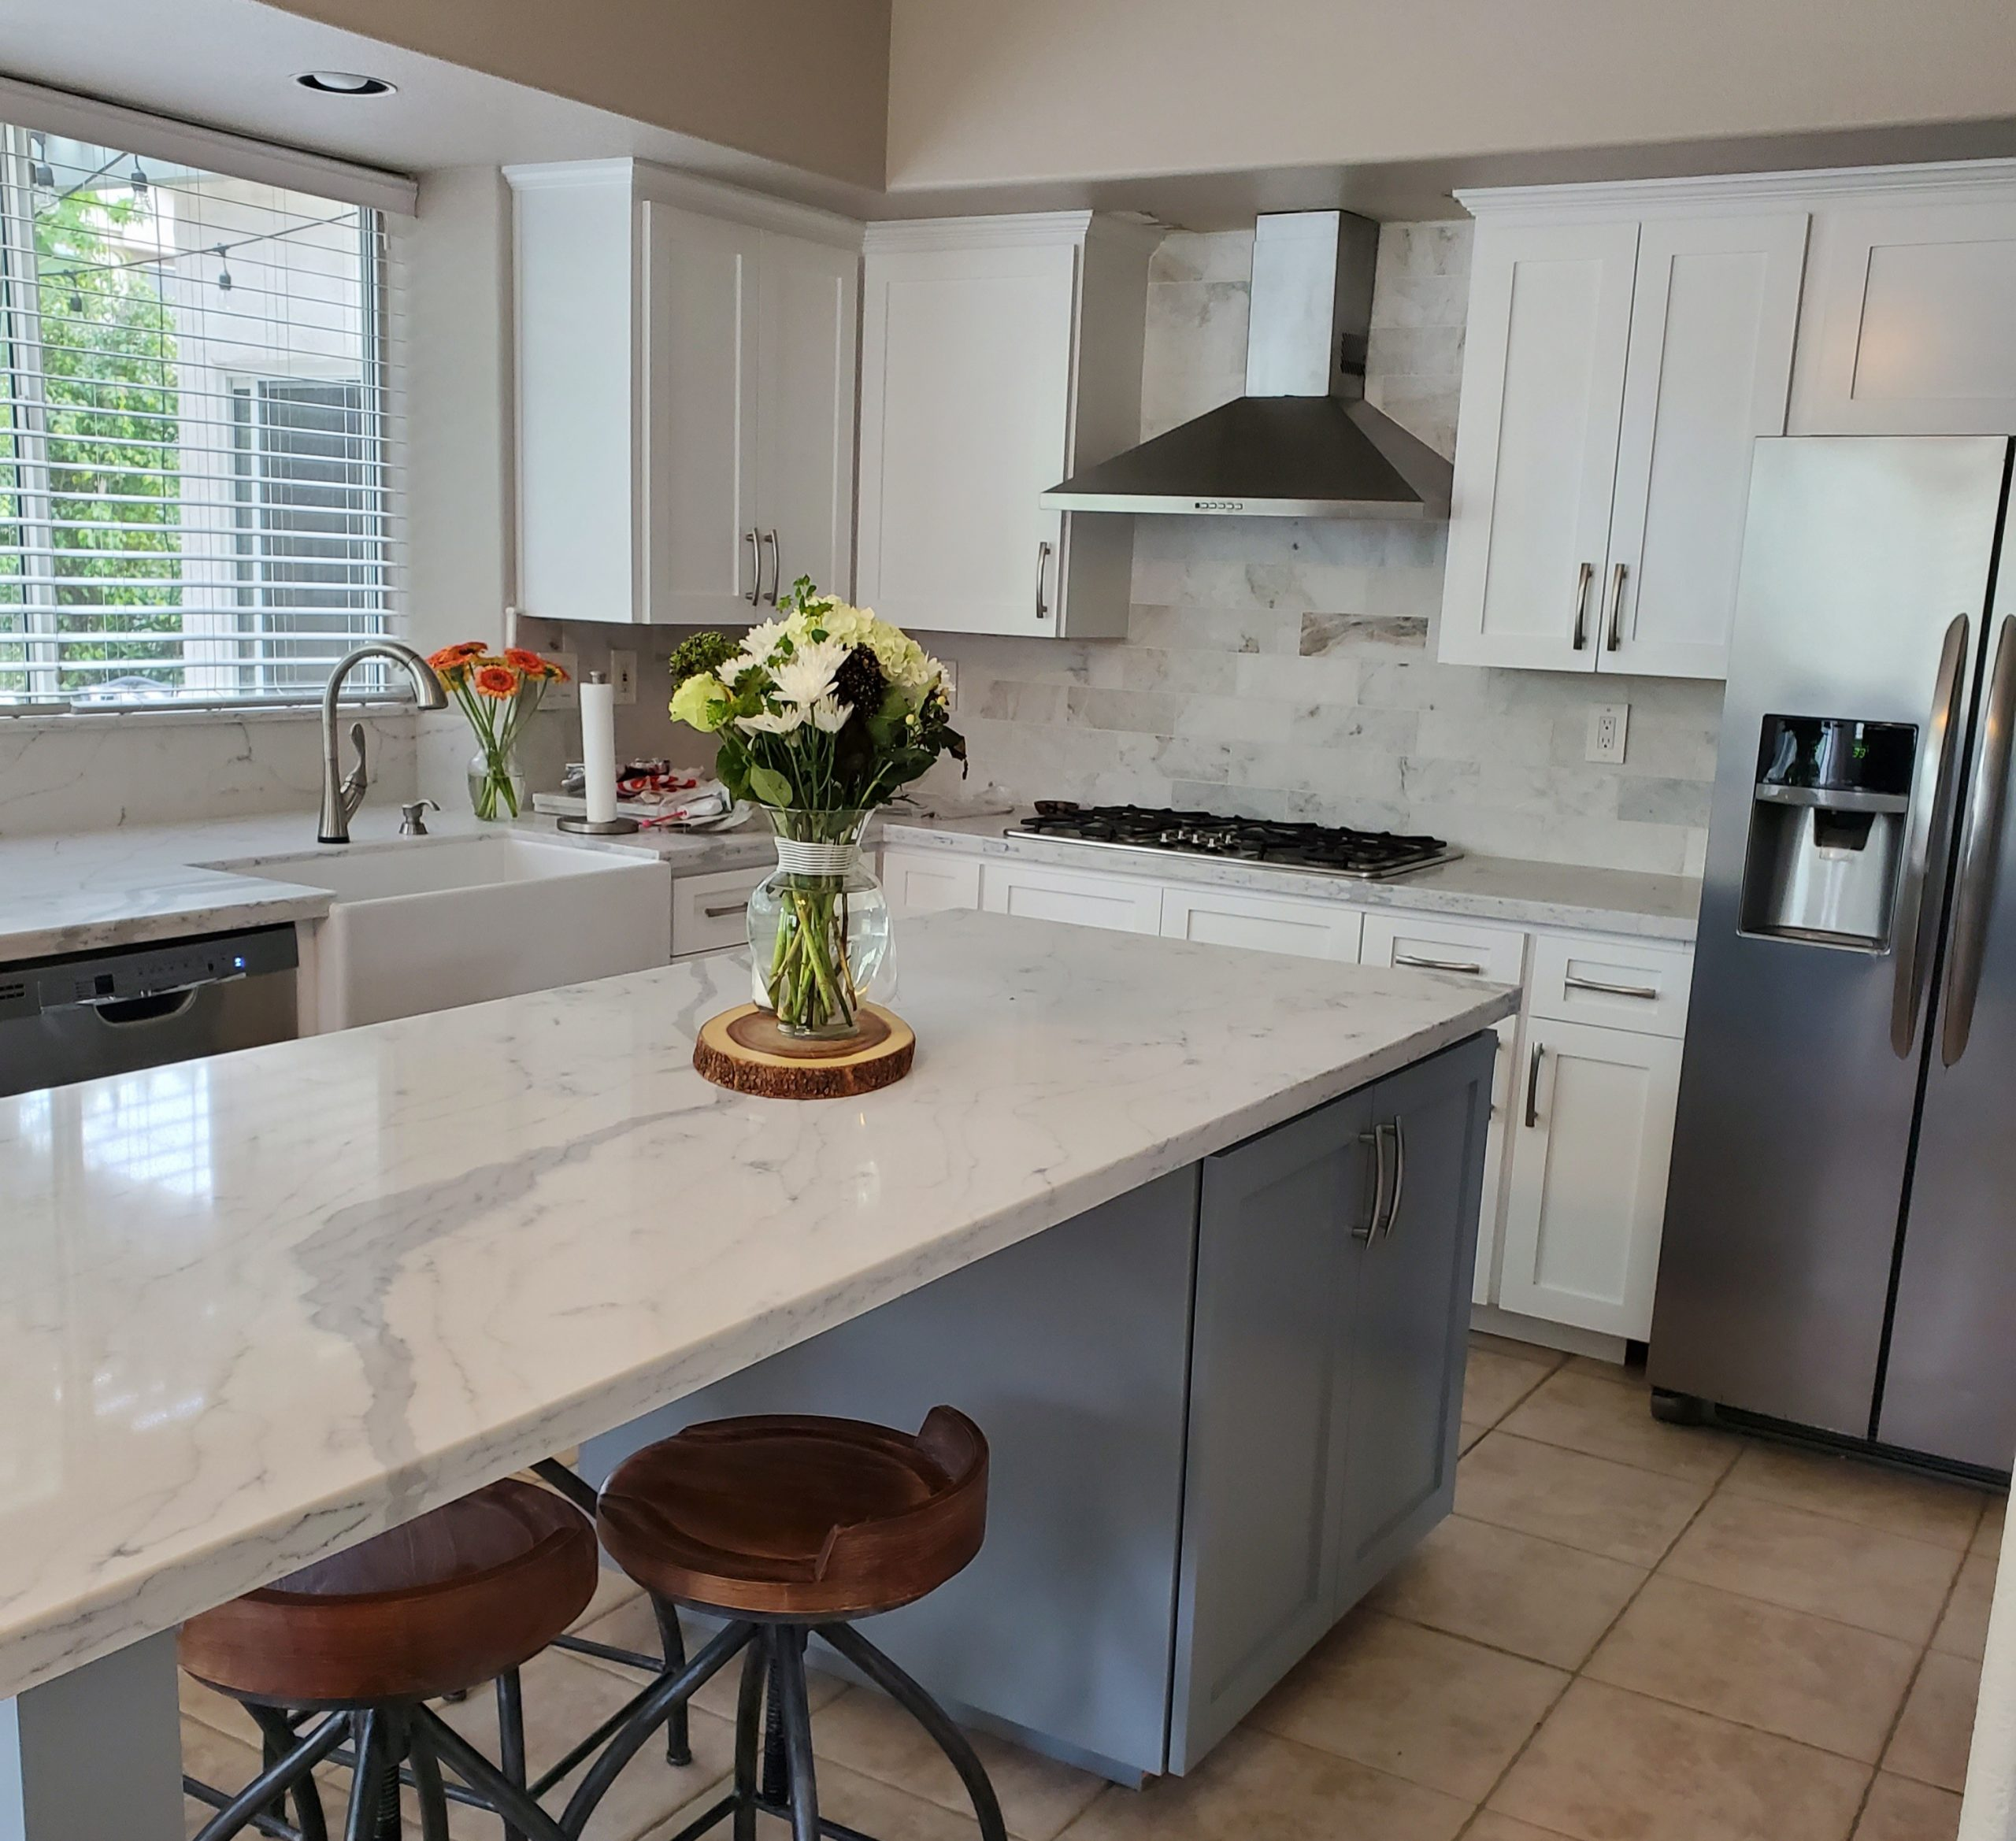 San Diego Kitchen Countertops Wholesale Rates Idel Designs Inc